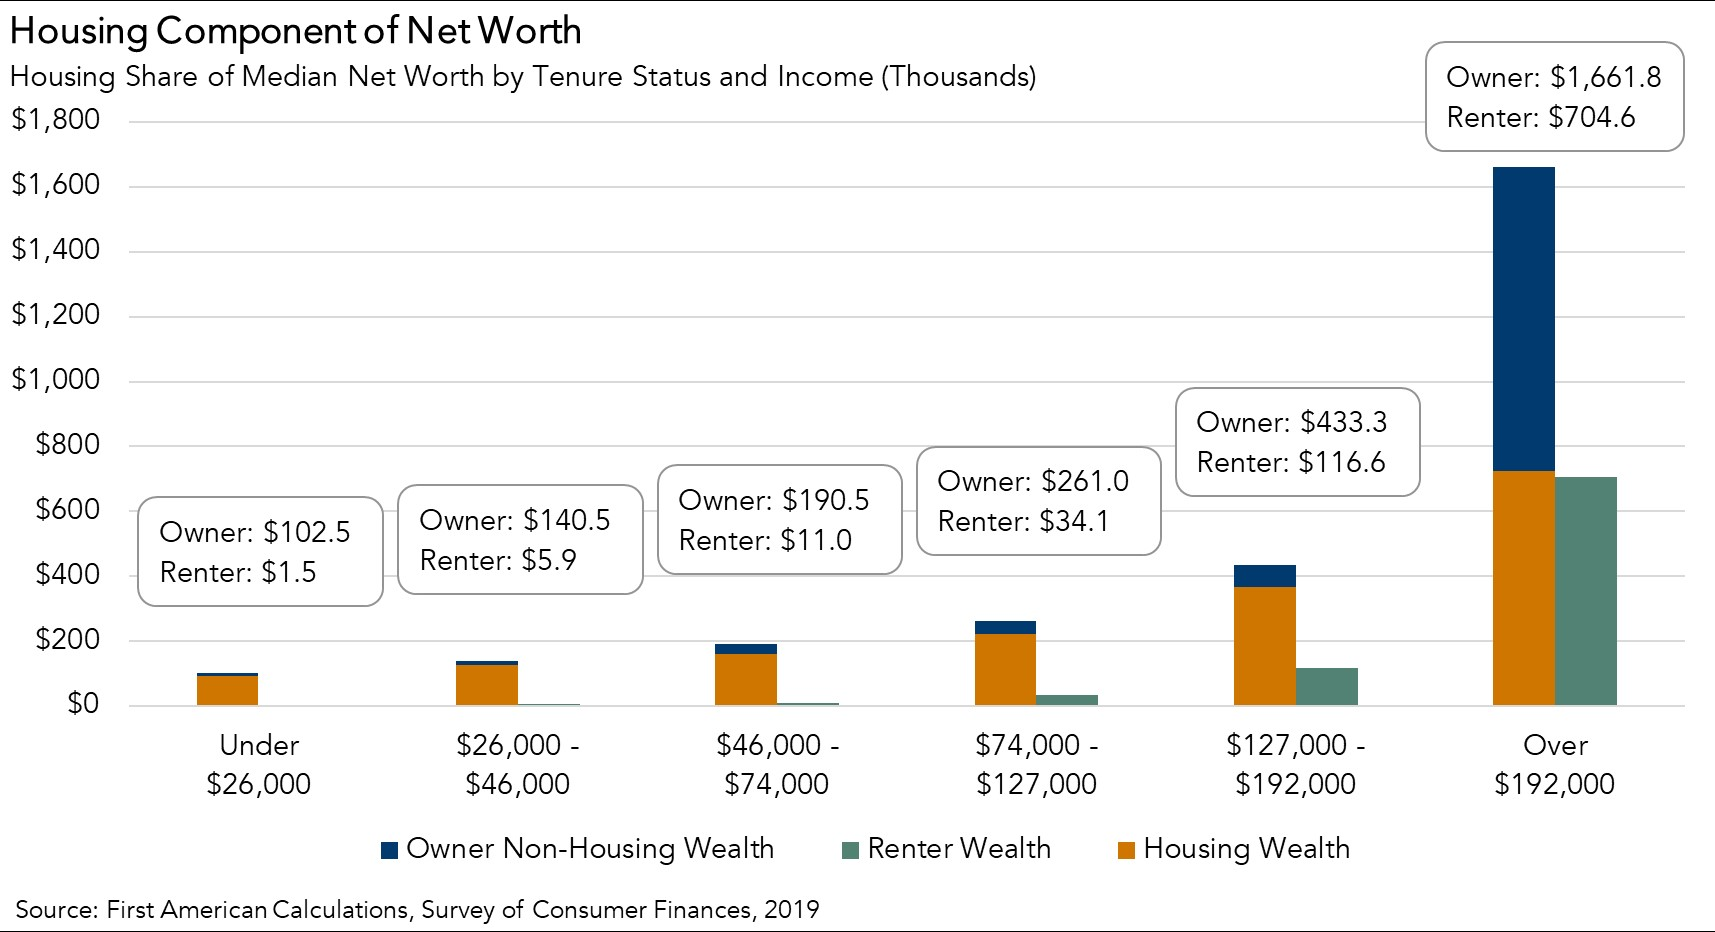 Housing Component of Net Worth Chart 2019